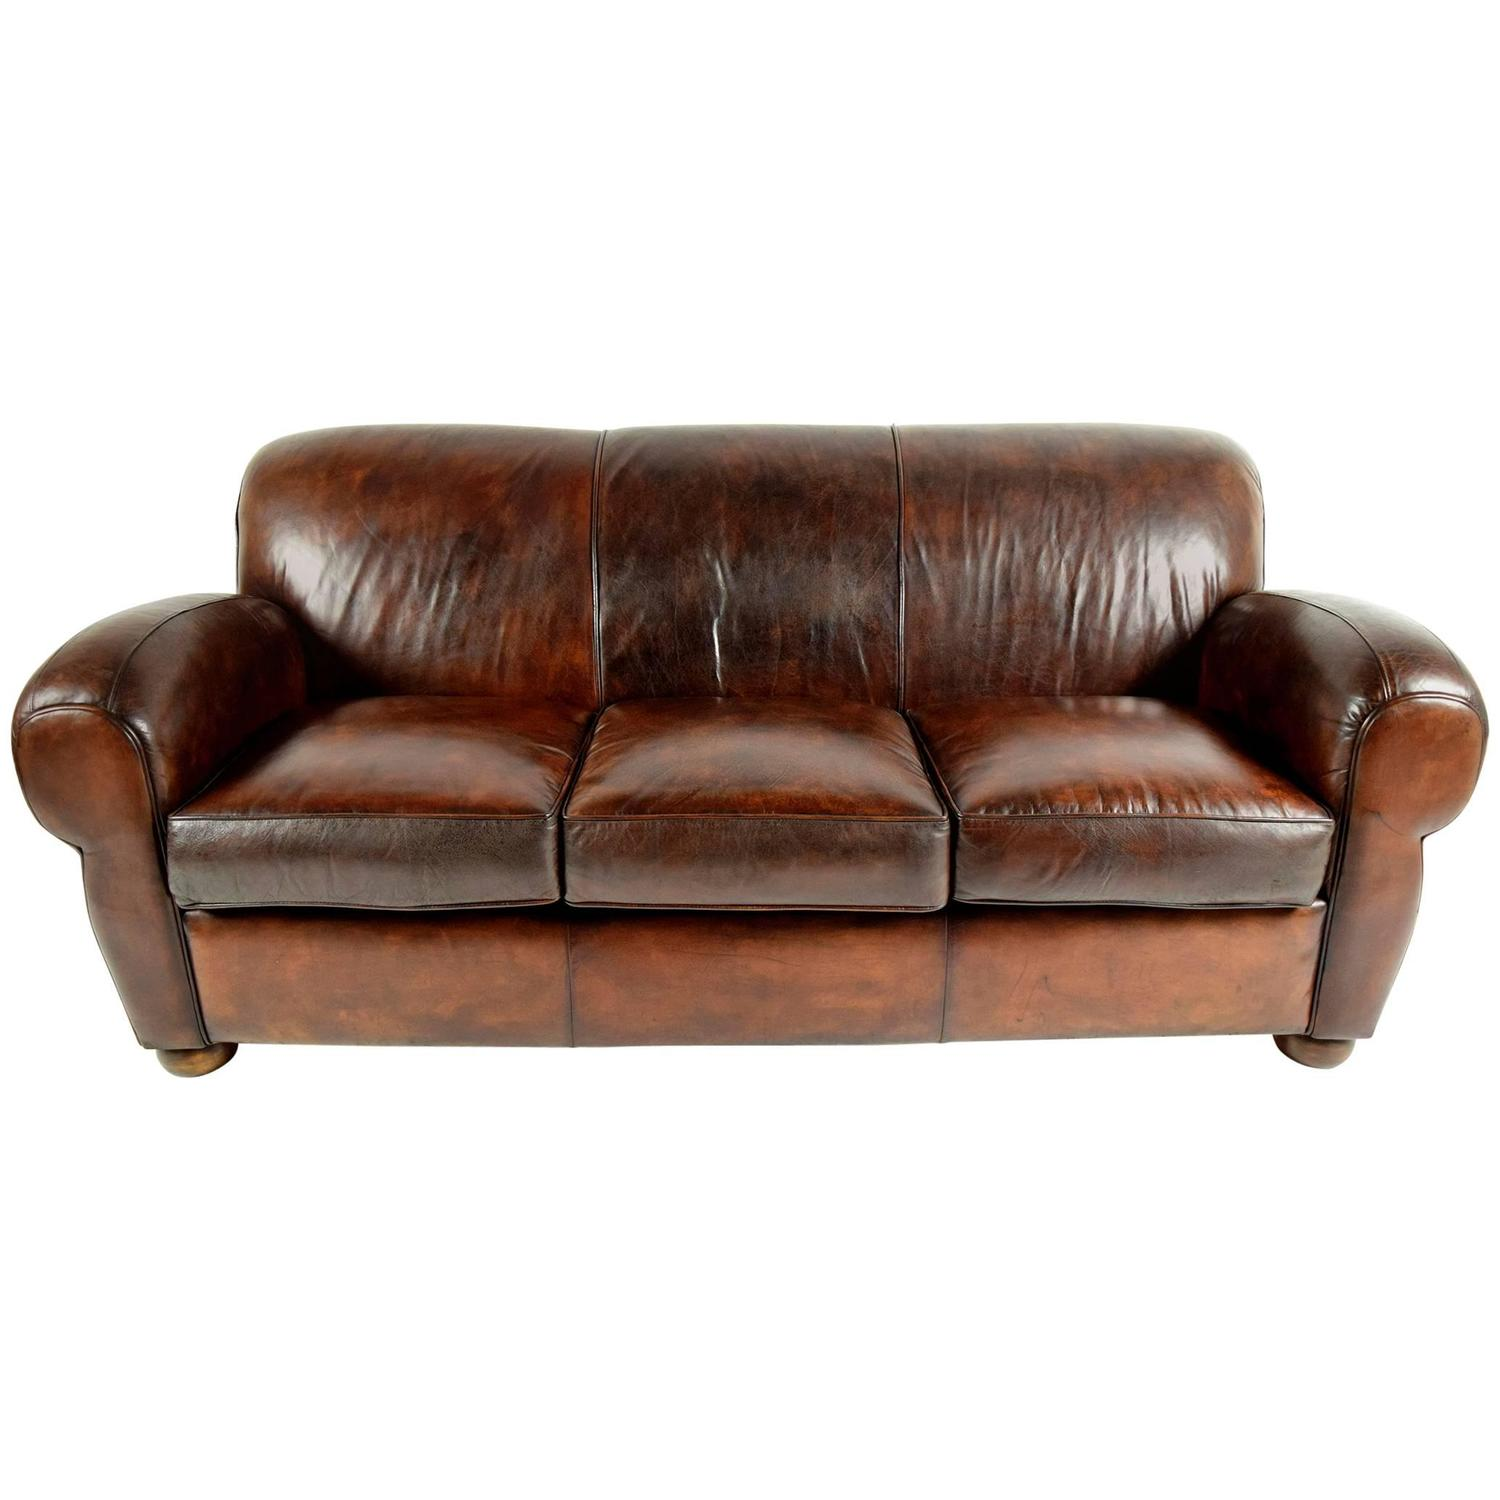 1970 39 S Vintage Club Distressed Leather Sofa For Sale At 1stdibs